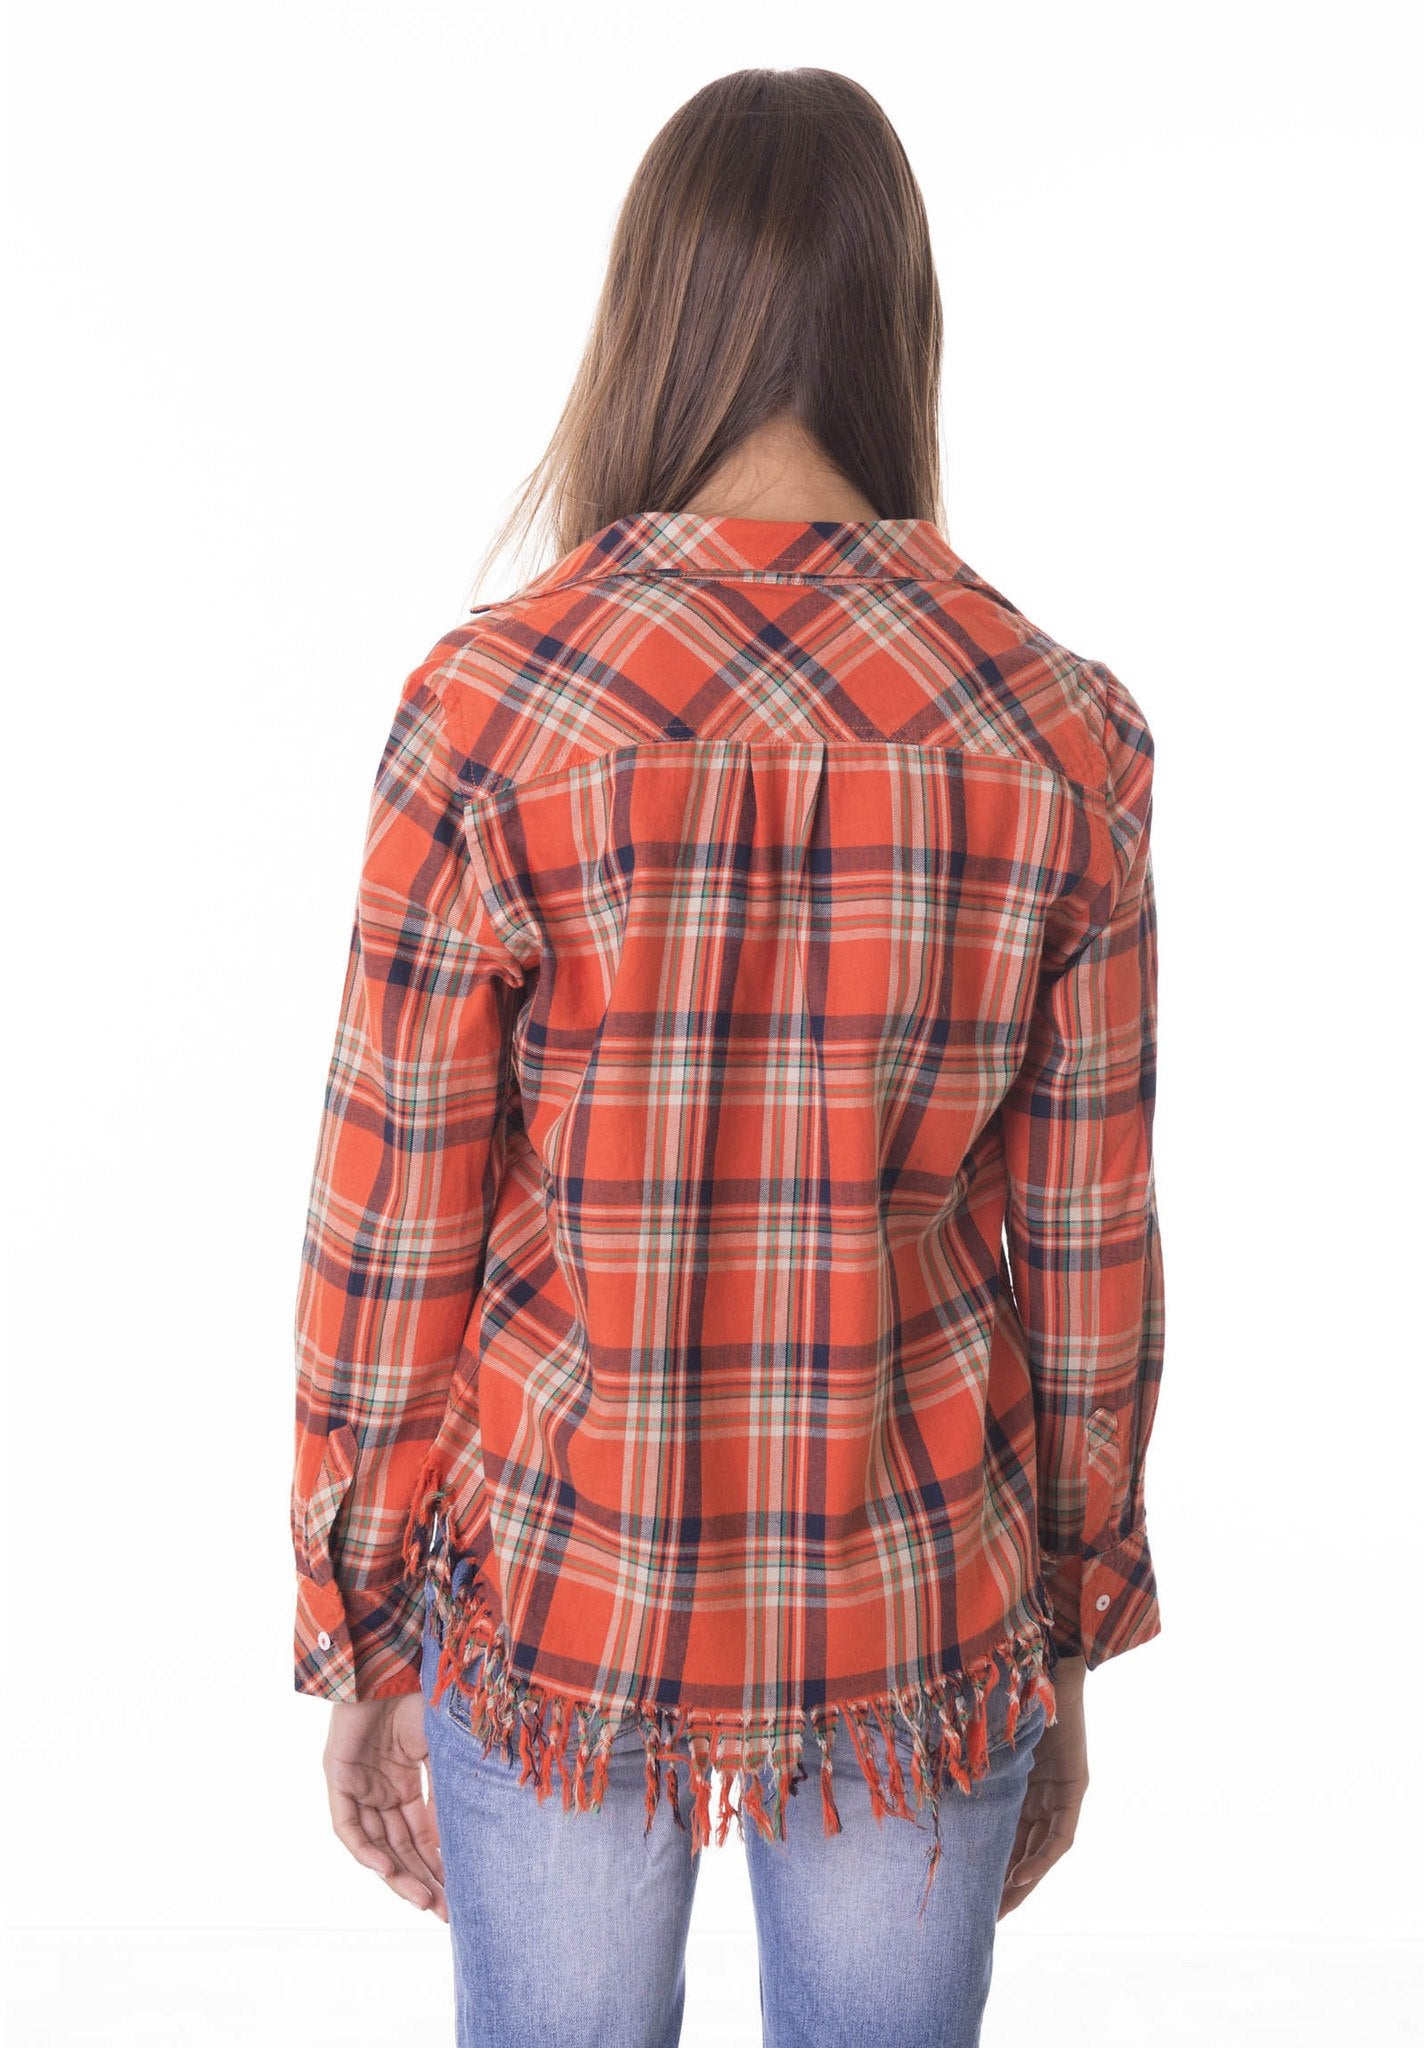 Rock, Distressed Trim Plaid Shirt